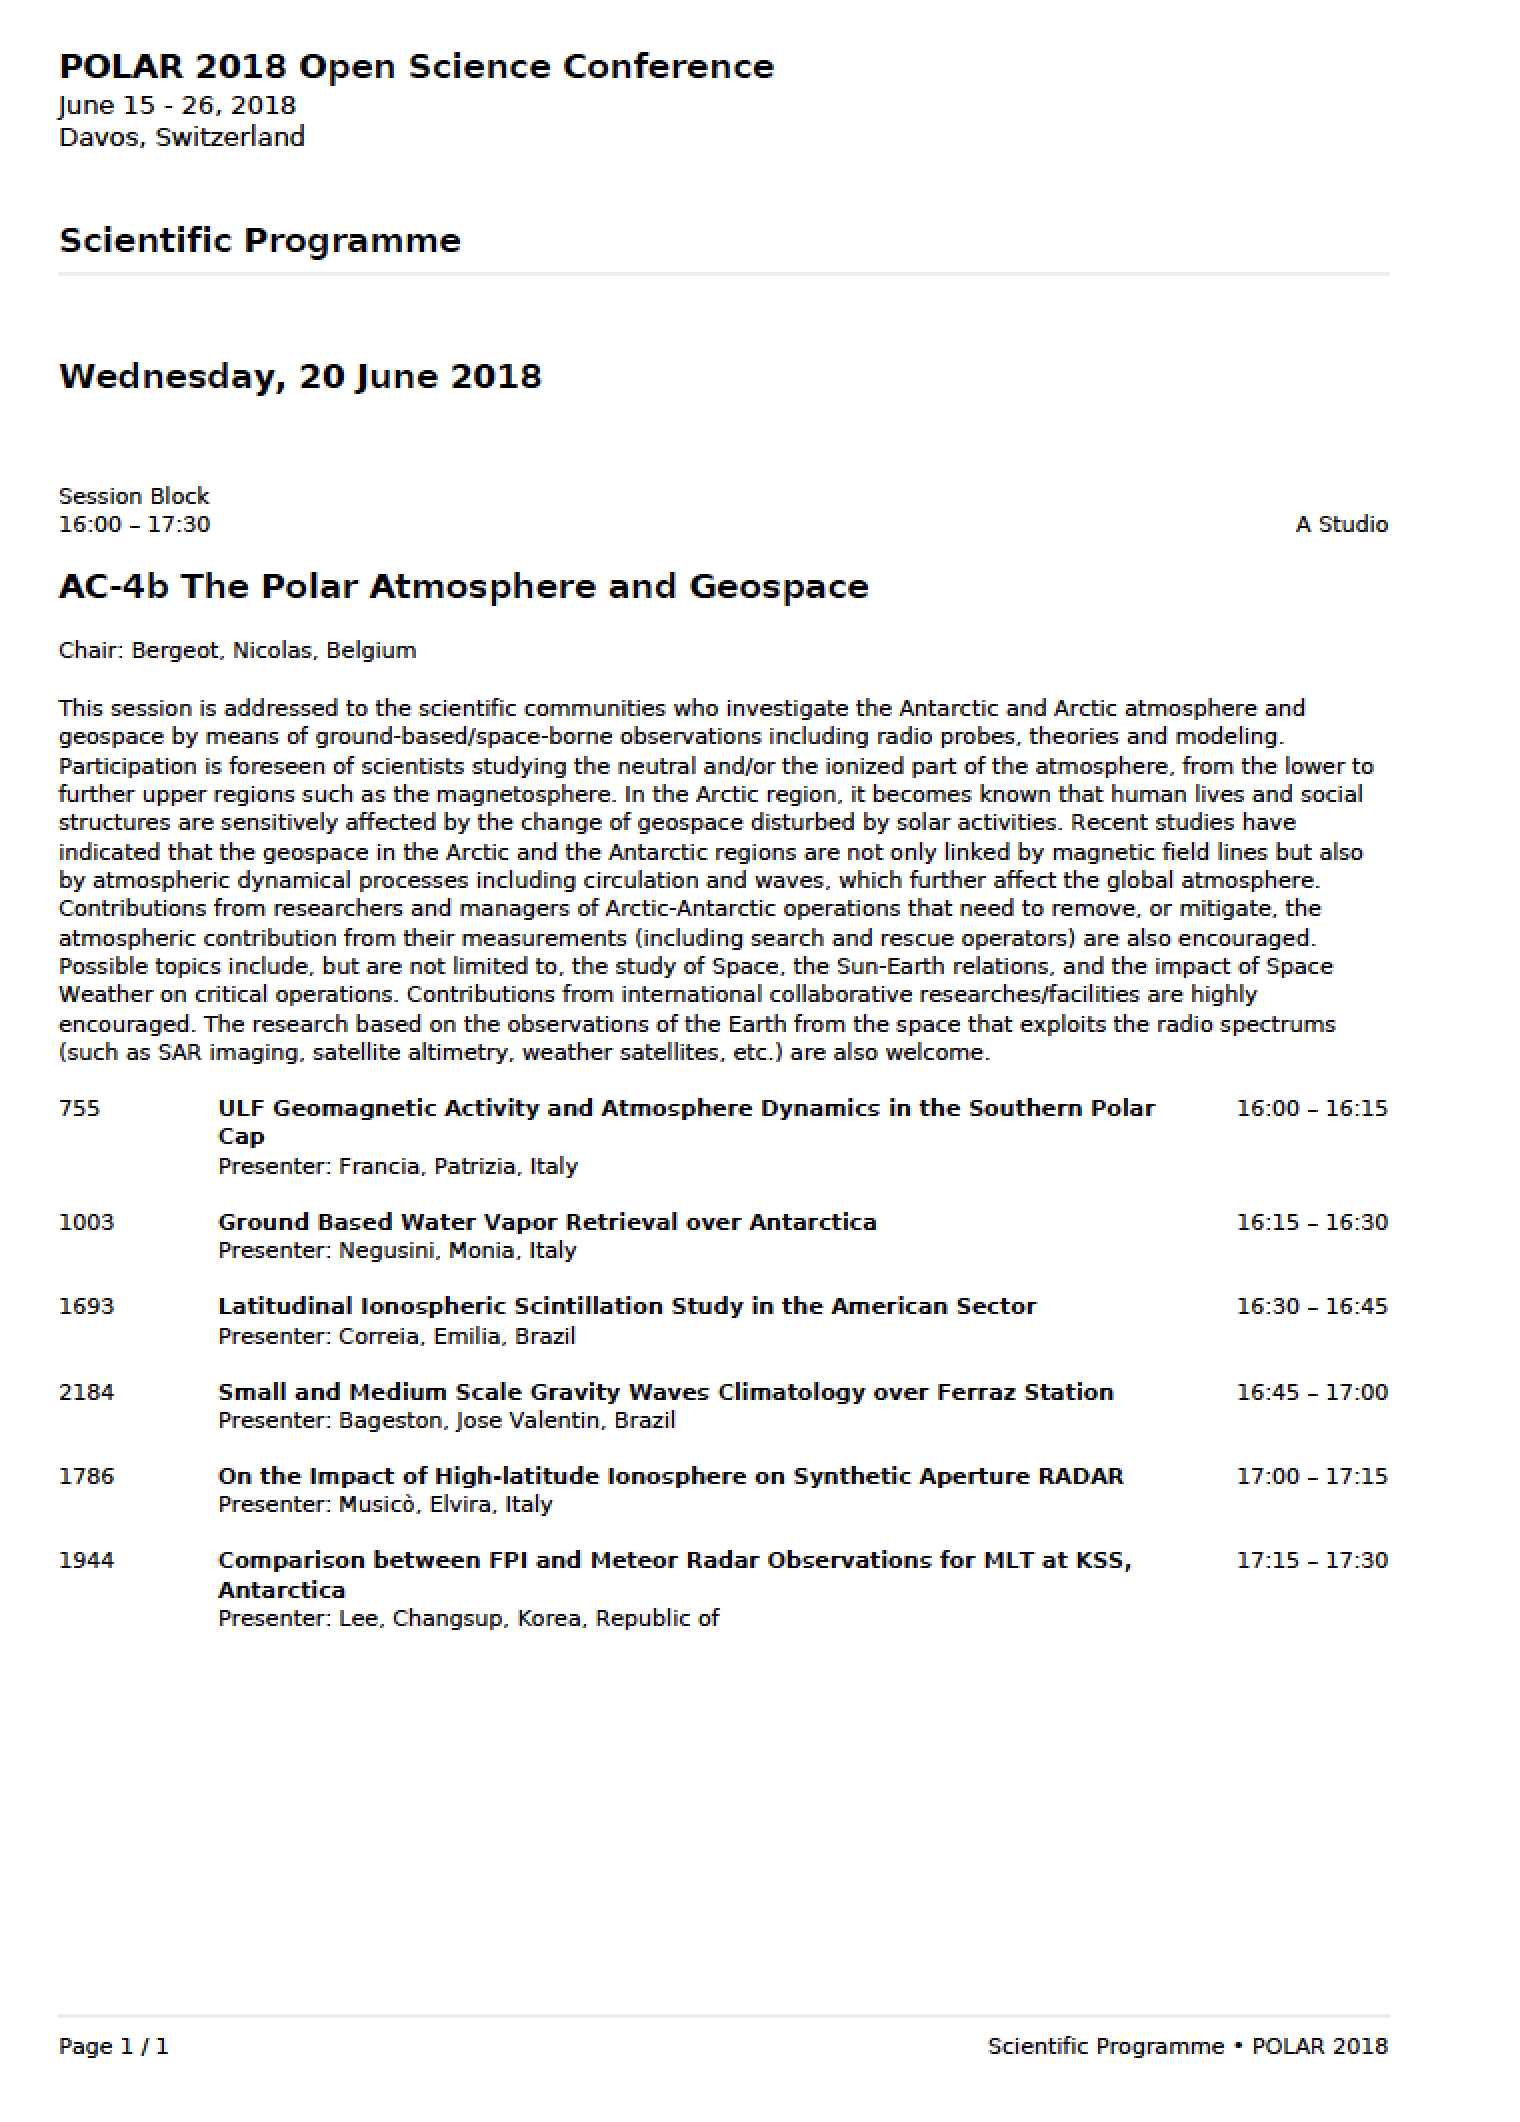 List of presentations at the GRAPE scientific session AC-4b